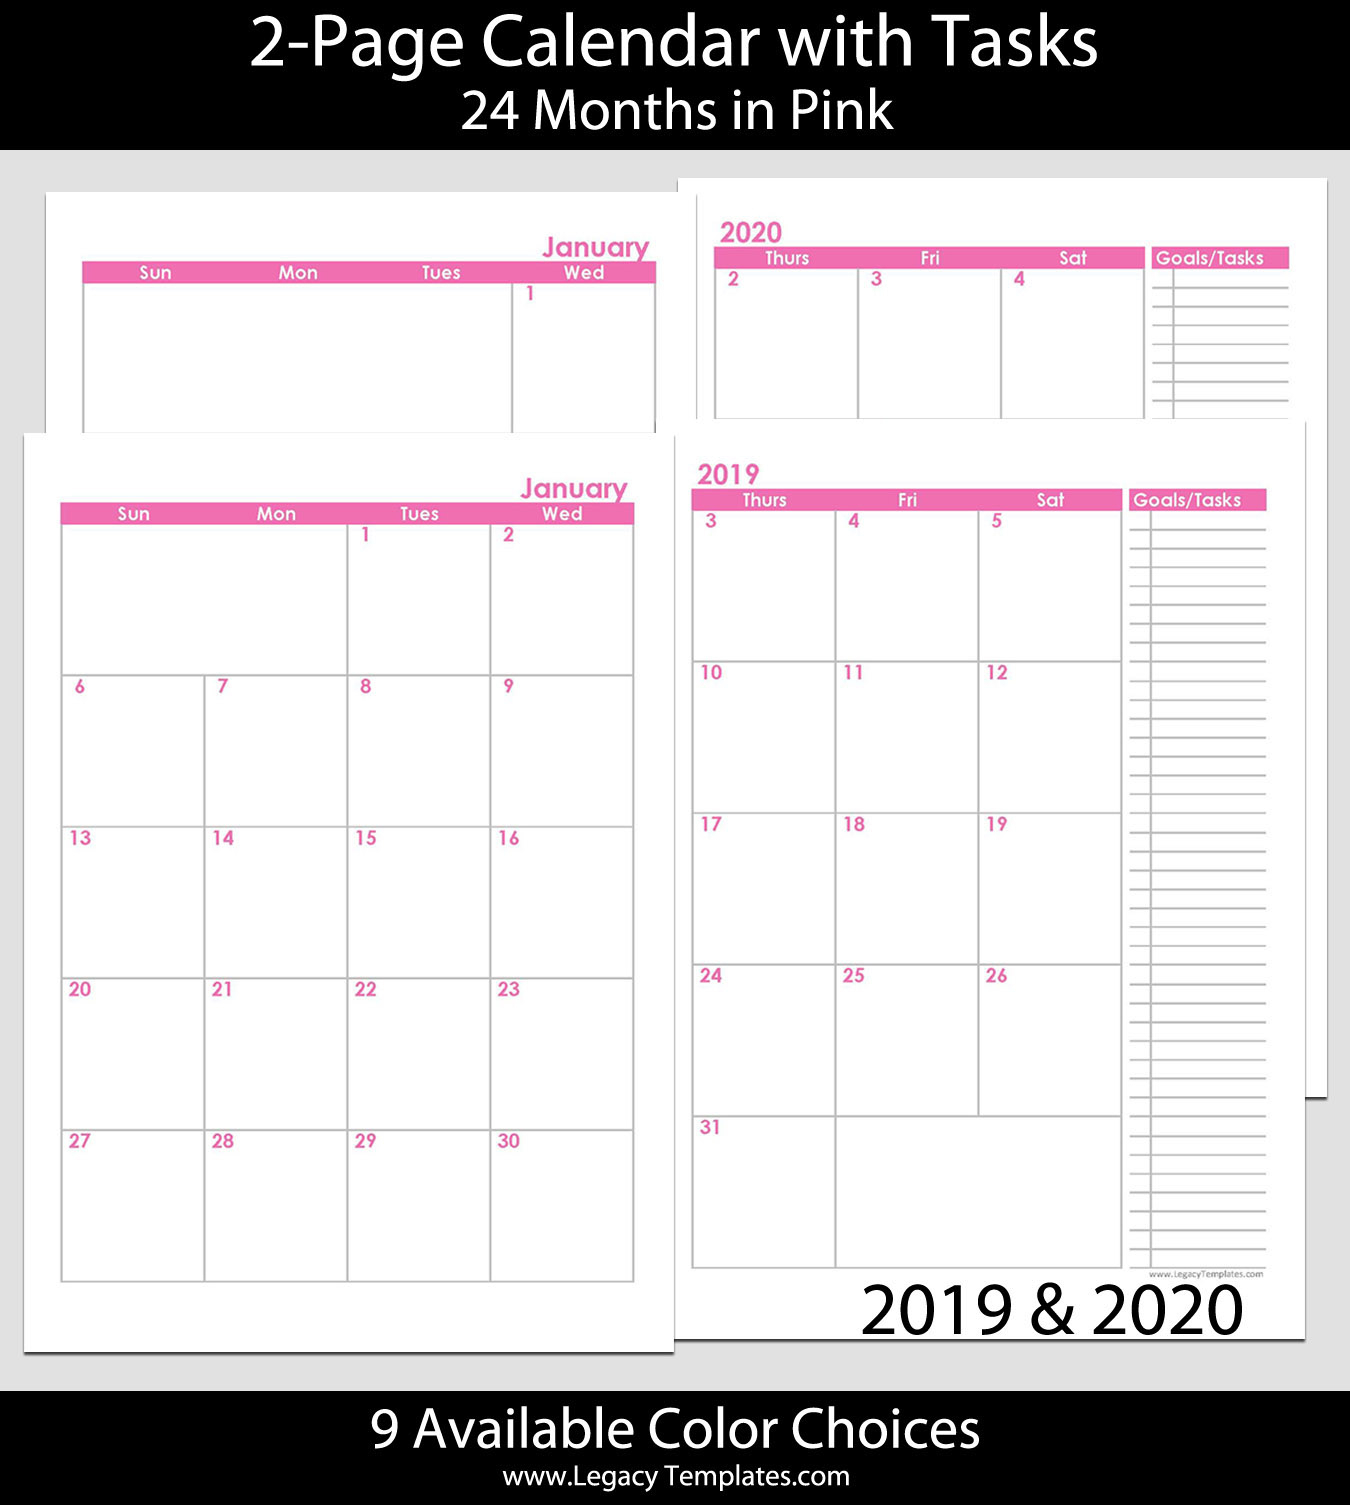 2019 & 2020 24-Months 2-Page Calendar – A5 | Legacy Templates with regard to 2020 Printable Calendar With Sunday And Saturday Pink Color